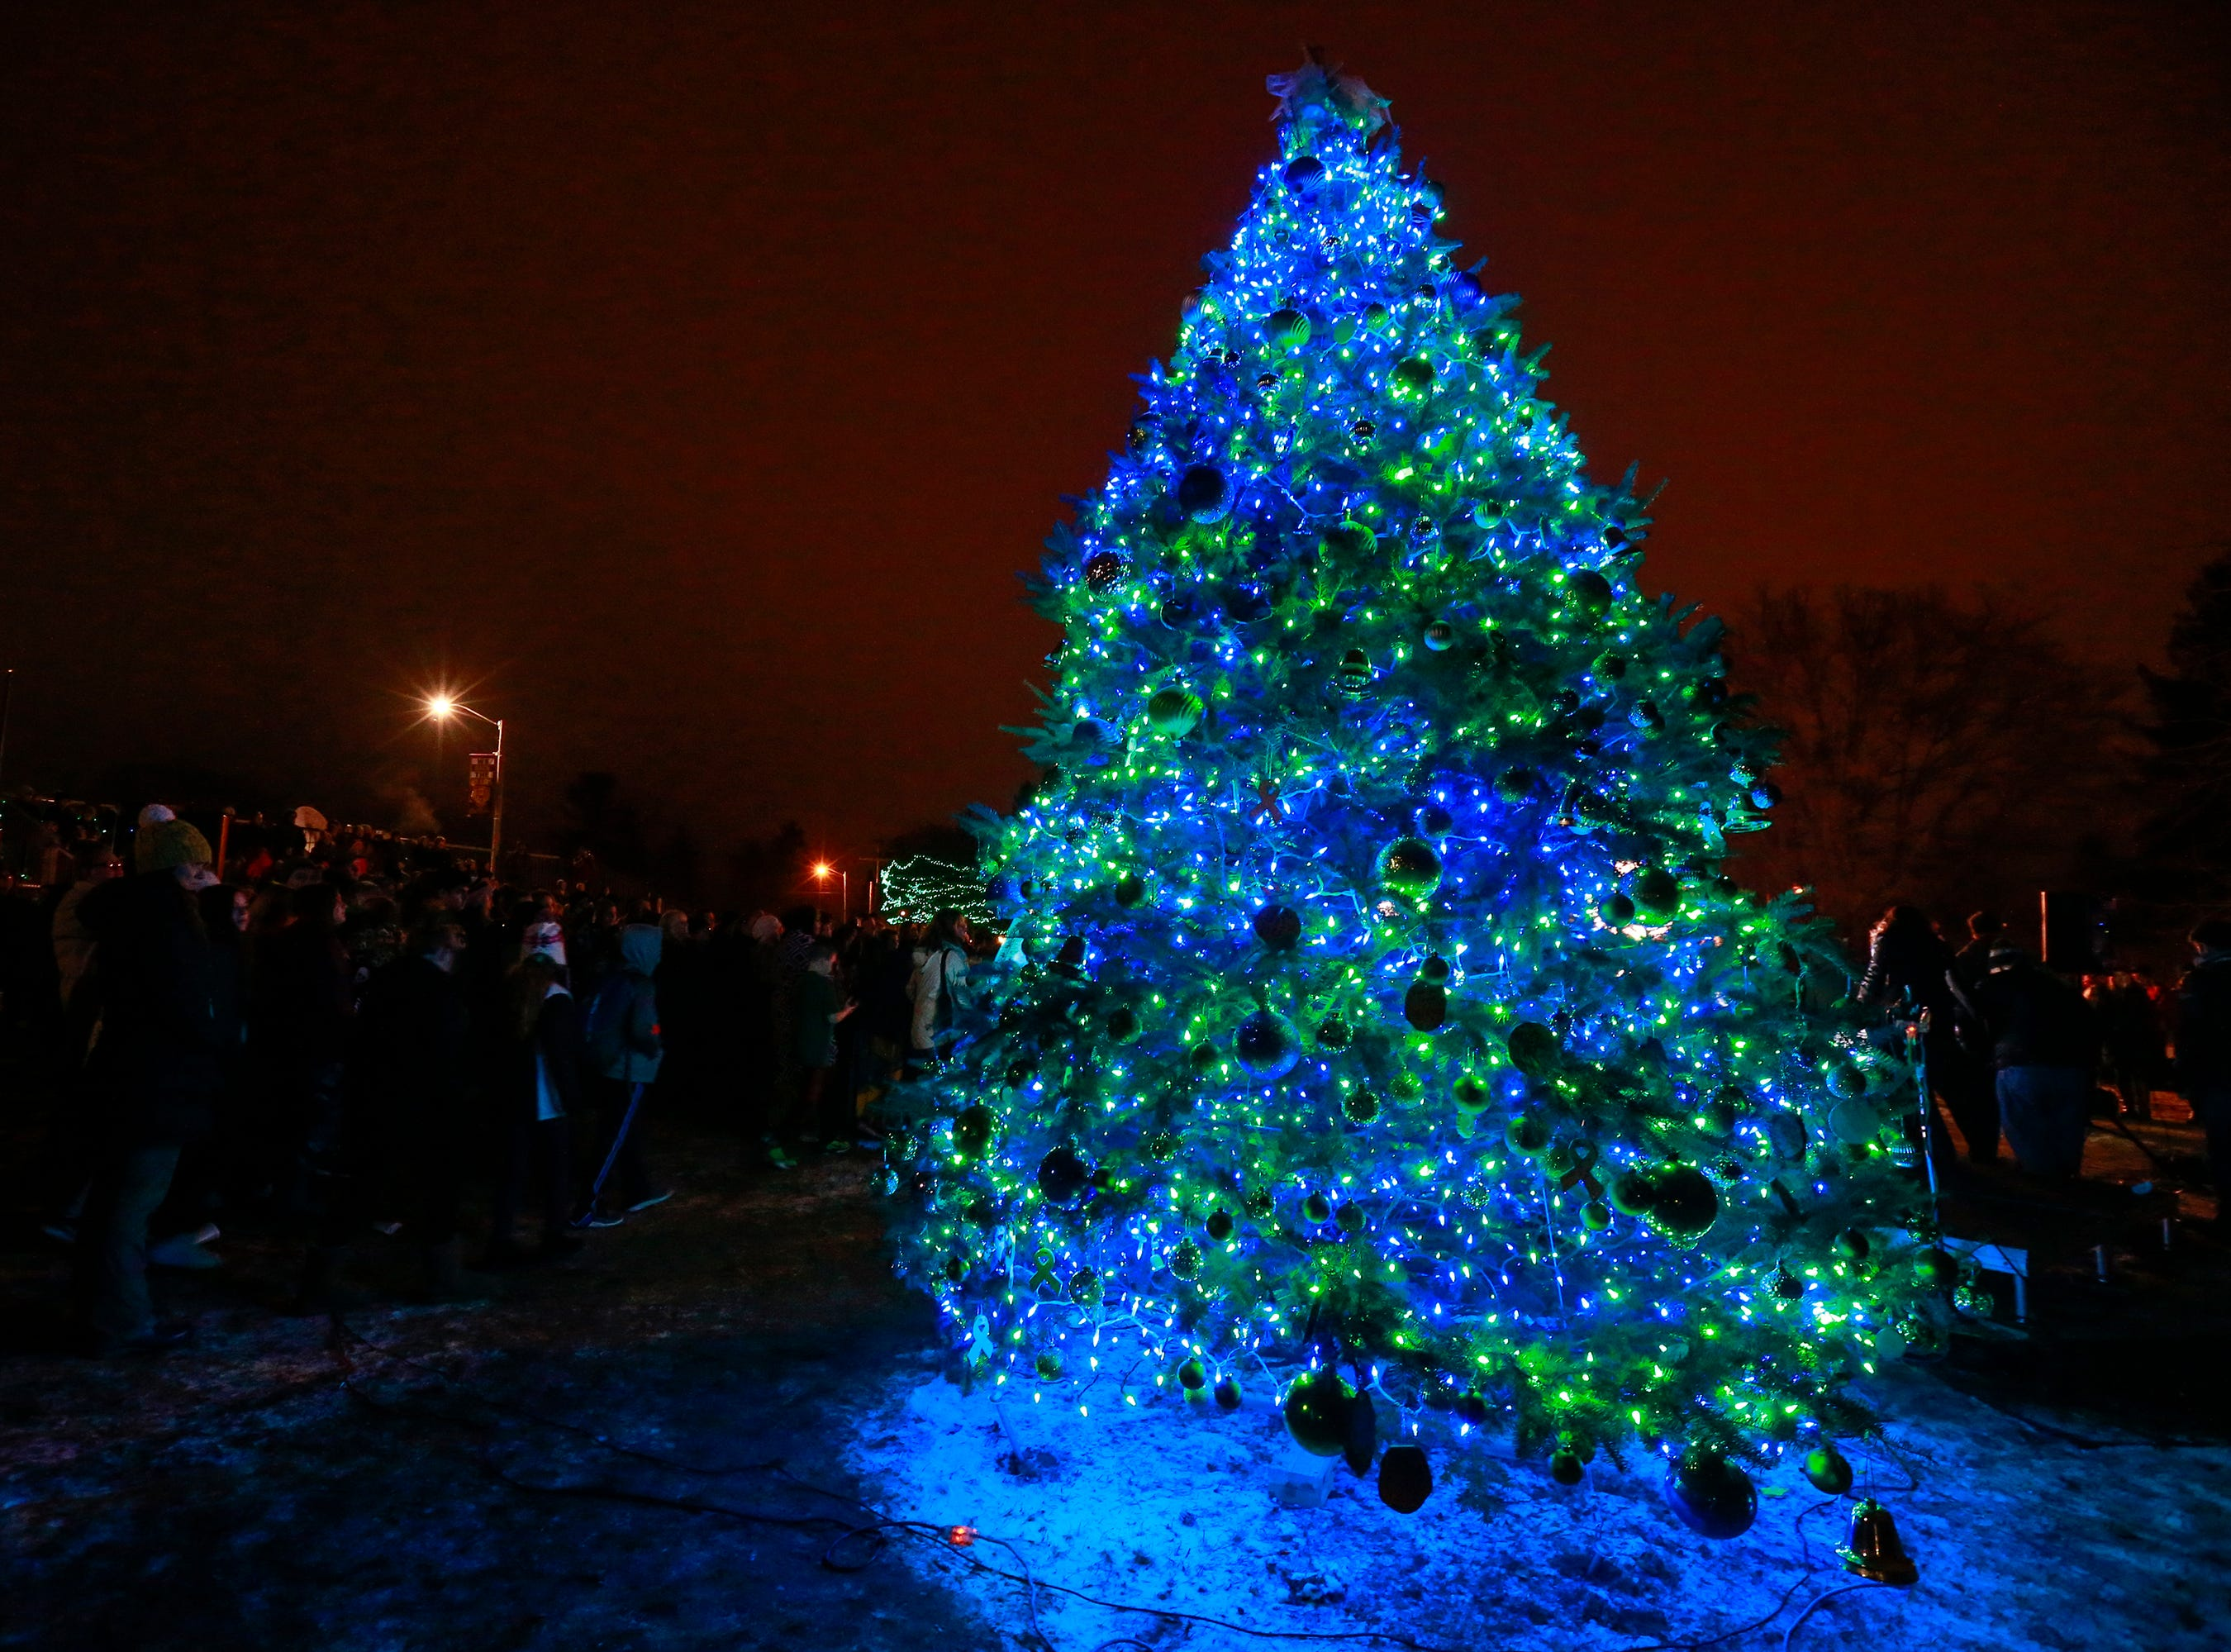 The Christmas tree gets lit up as a ceremony of Hope for Jayme Closs Wednesday, Dec. 12, 2018, outside of Riverview Middle School in Barron, Wisc. T'xer Zhon Kha/USA TODAY NETWORK-Wisconsin